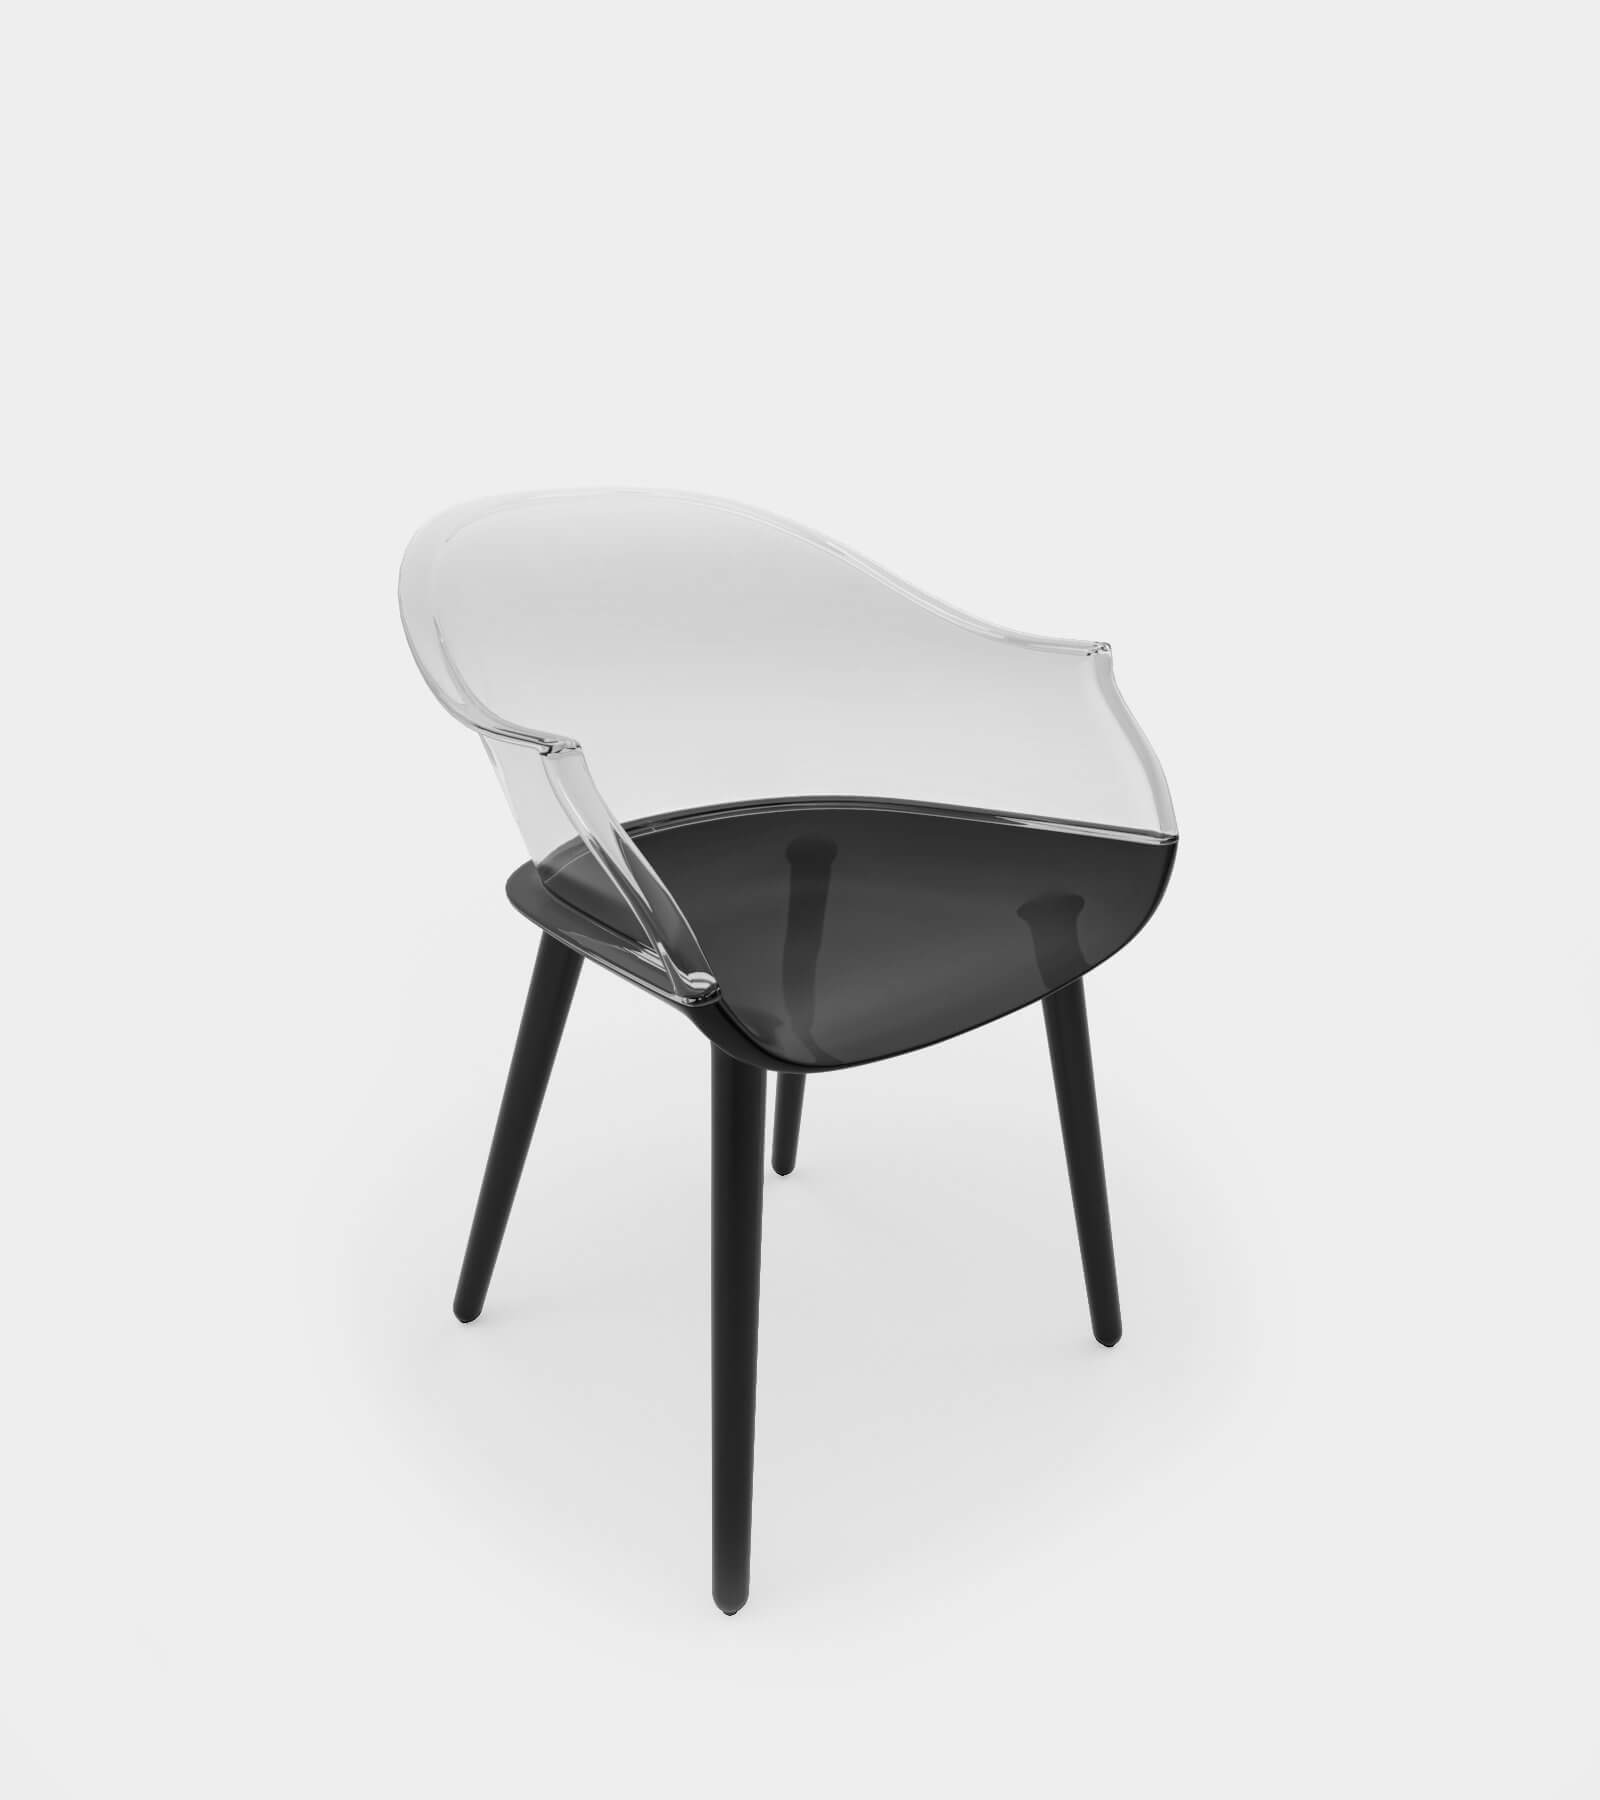 Round armchair & dining chair - 3D Model